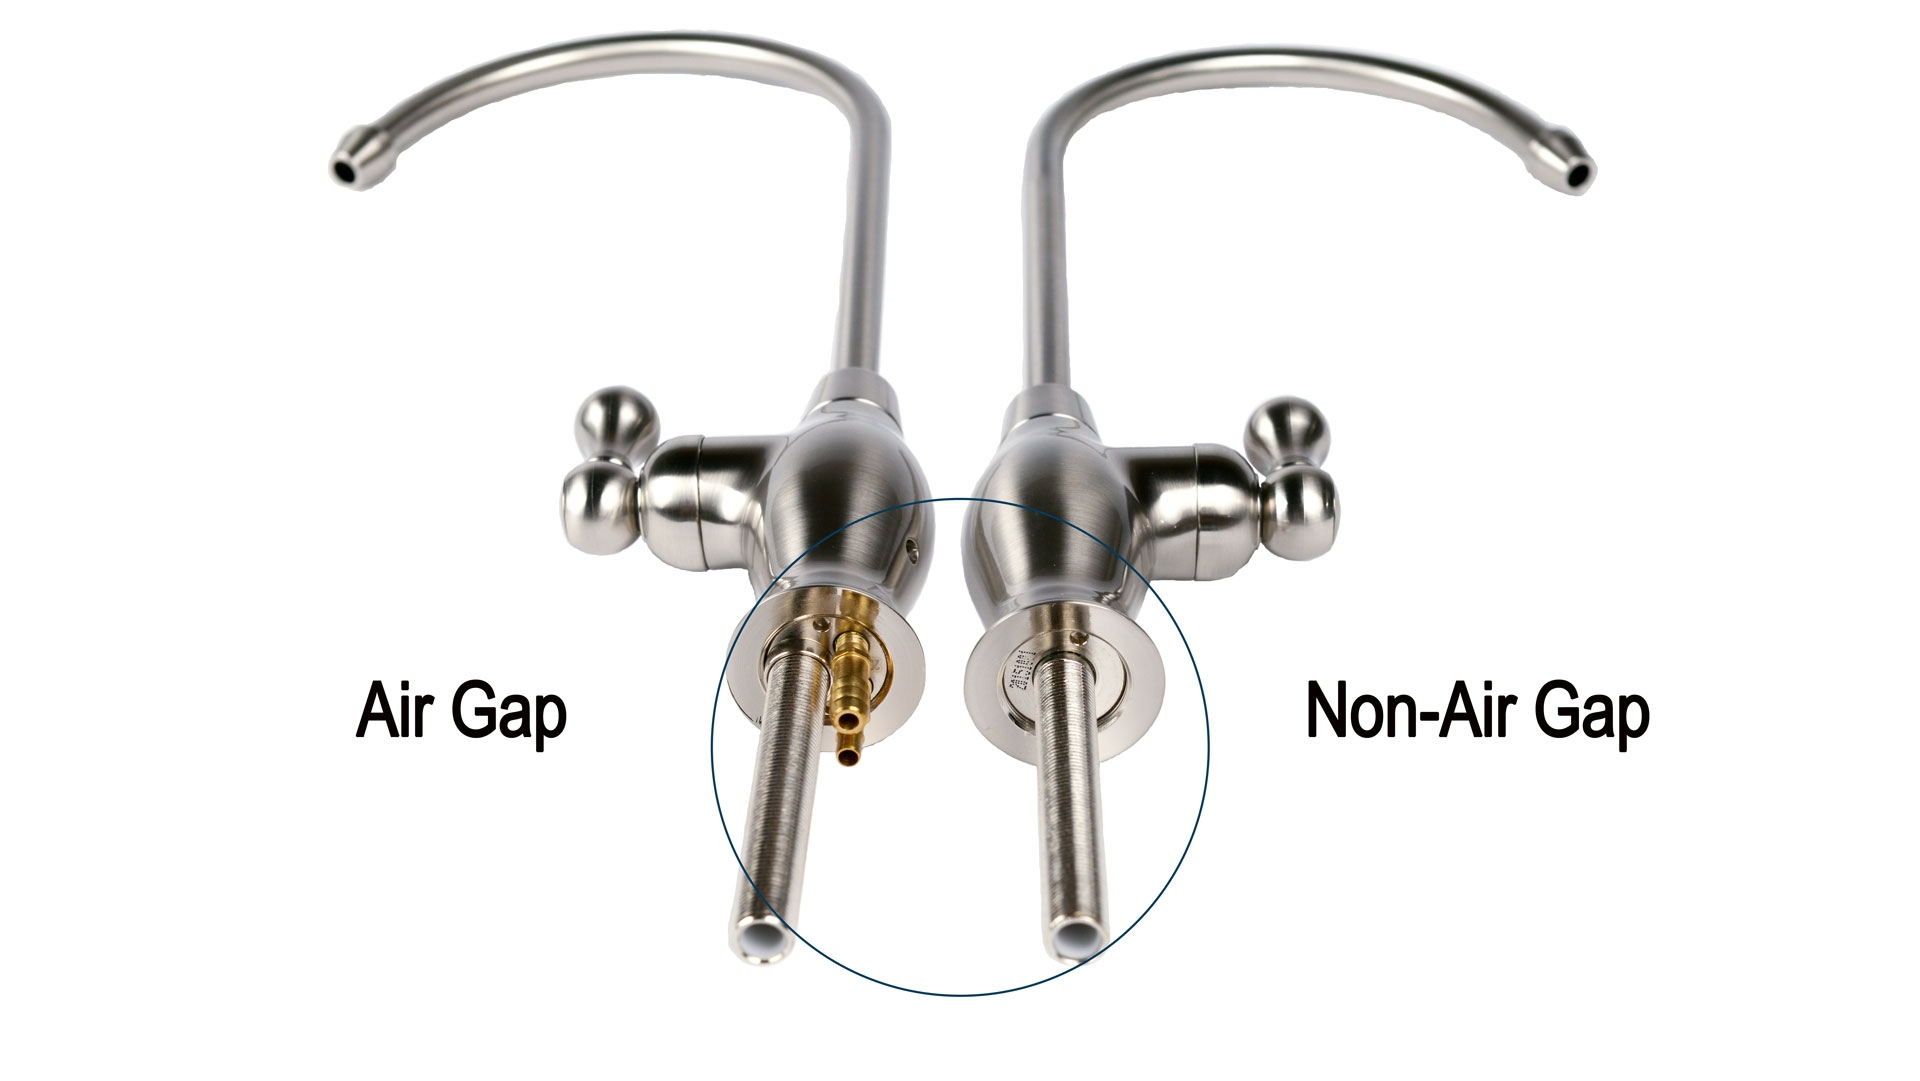 Air Gap Faucets For Reverse Osmosis Systems